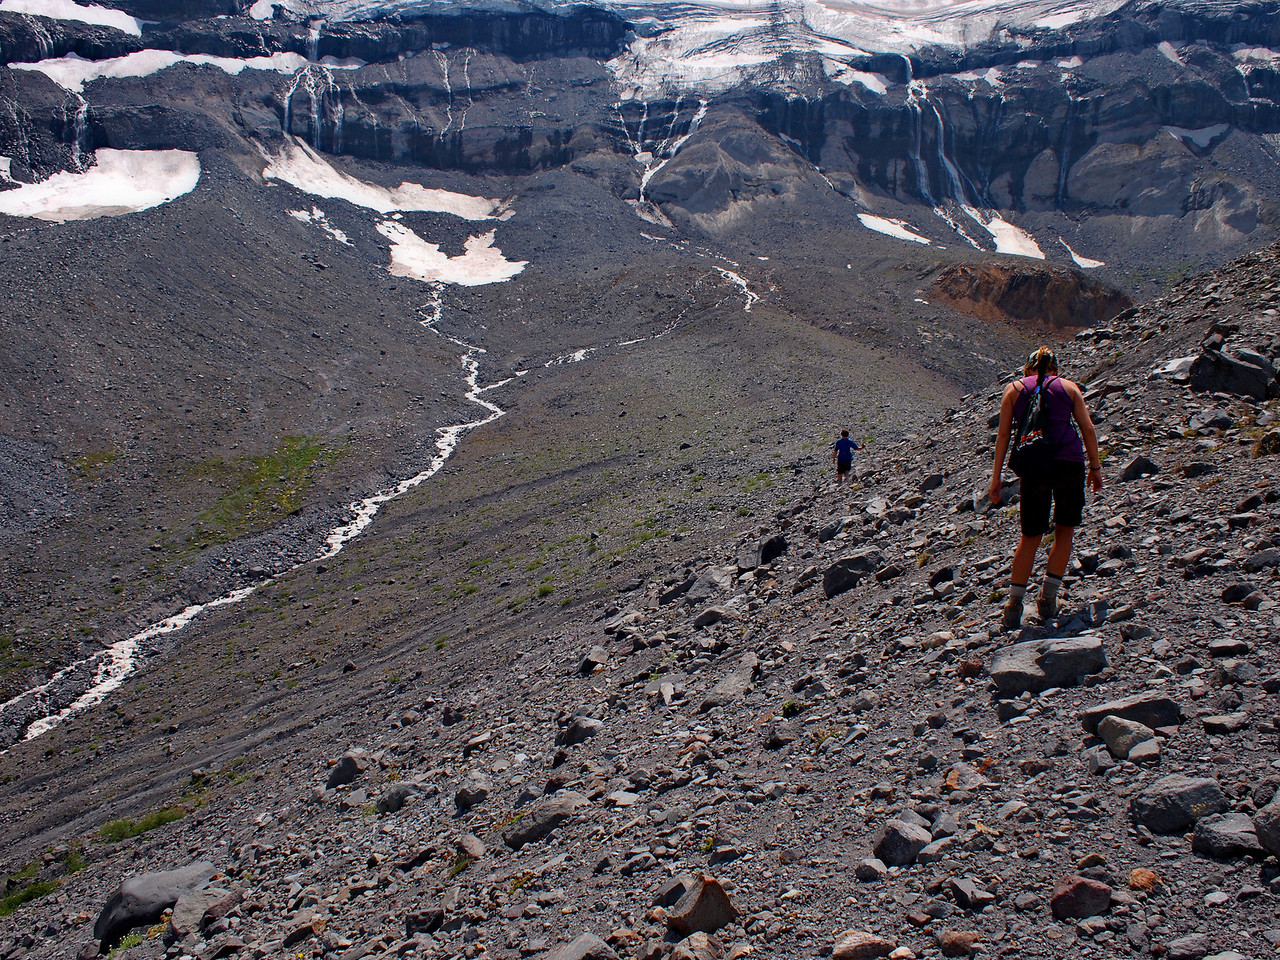 Heading out towards the moraine, and the source of the river at the base of the glacier (in the distance).